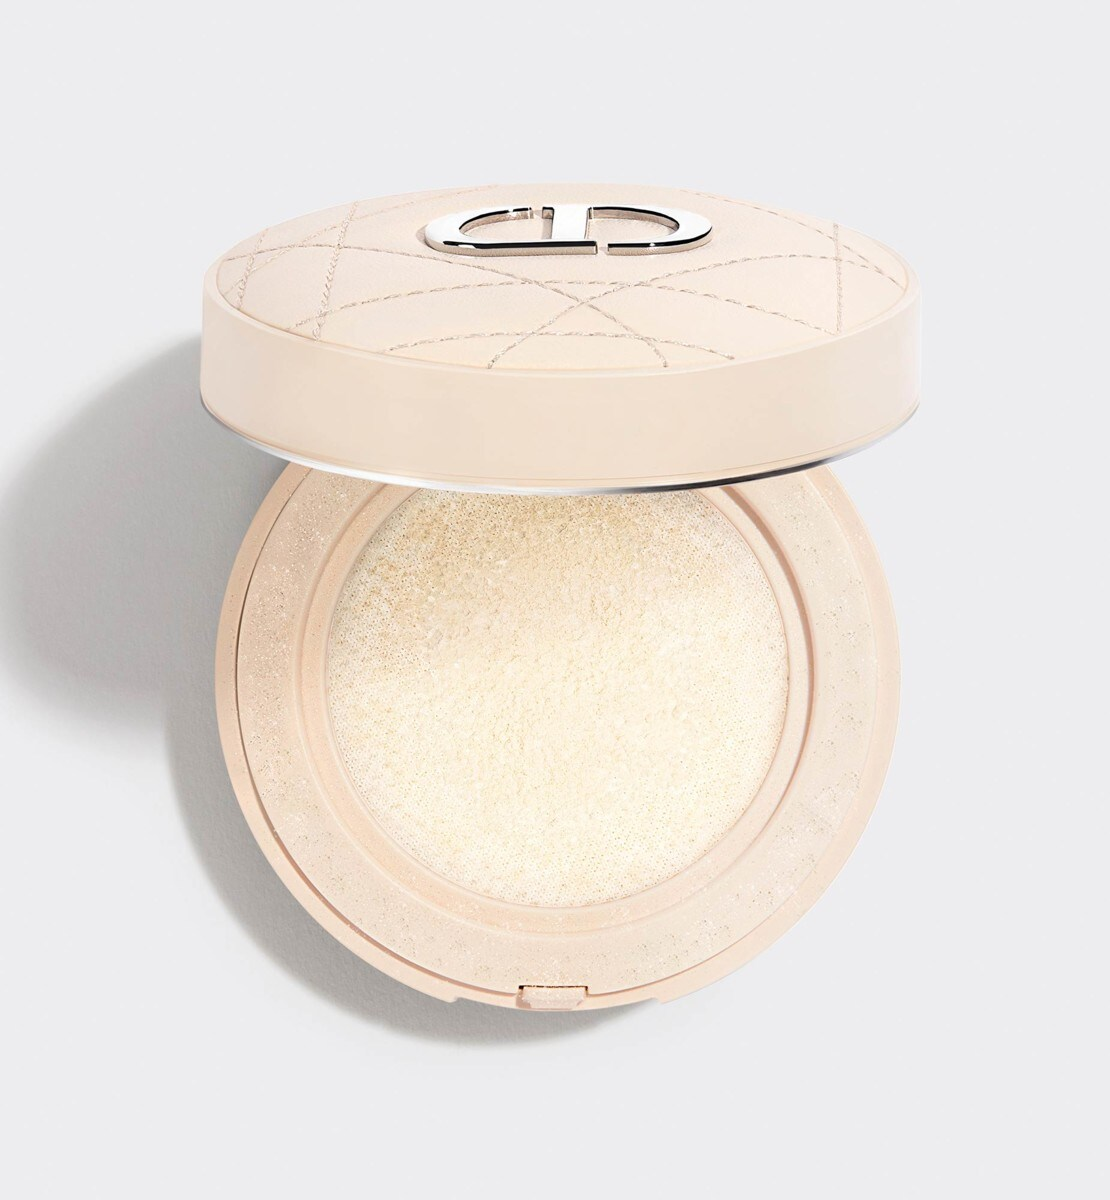 Dior - Dior Forever Cushion Powder - Golden Nights Collection Limited Edition Ultra-fine skin fresh loose powder - long-wear translucent perfection - floral extract-enriched